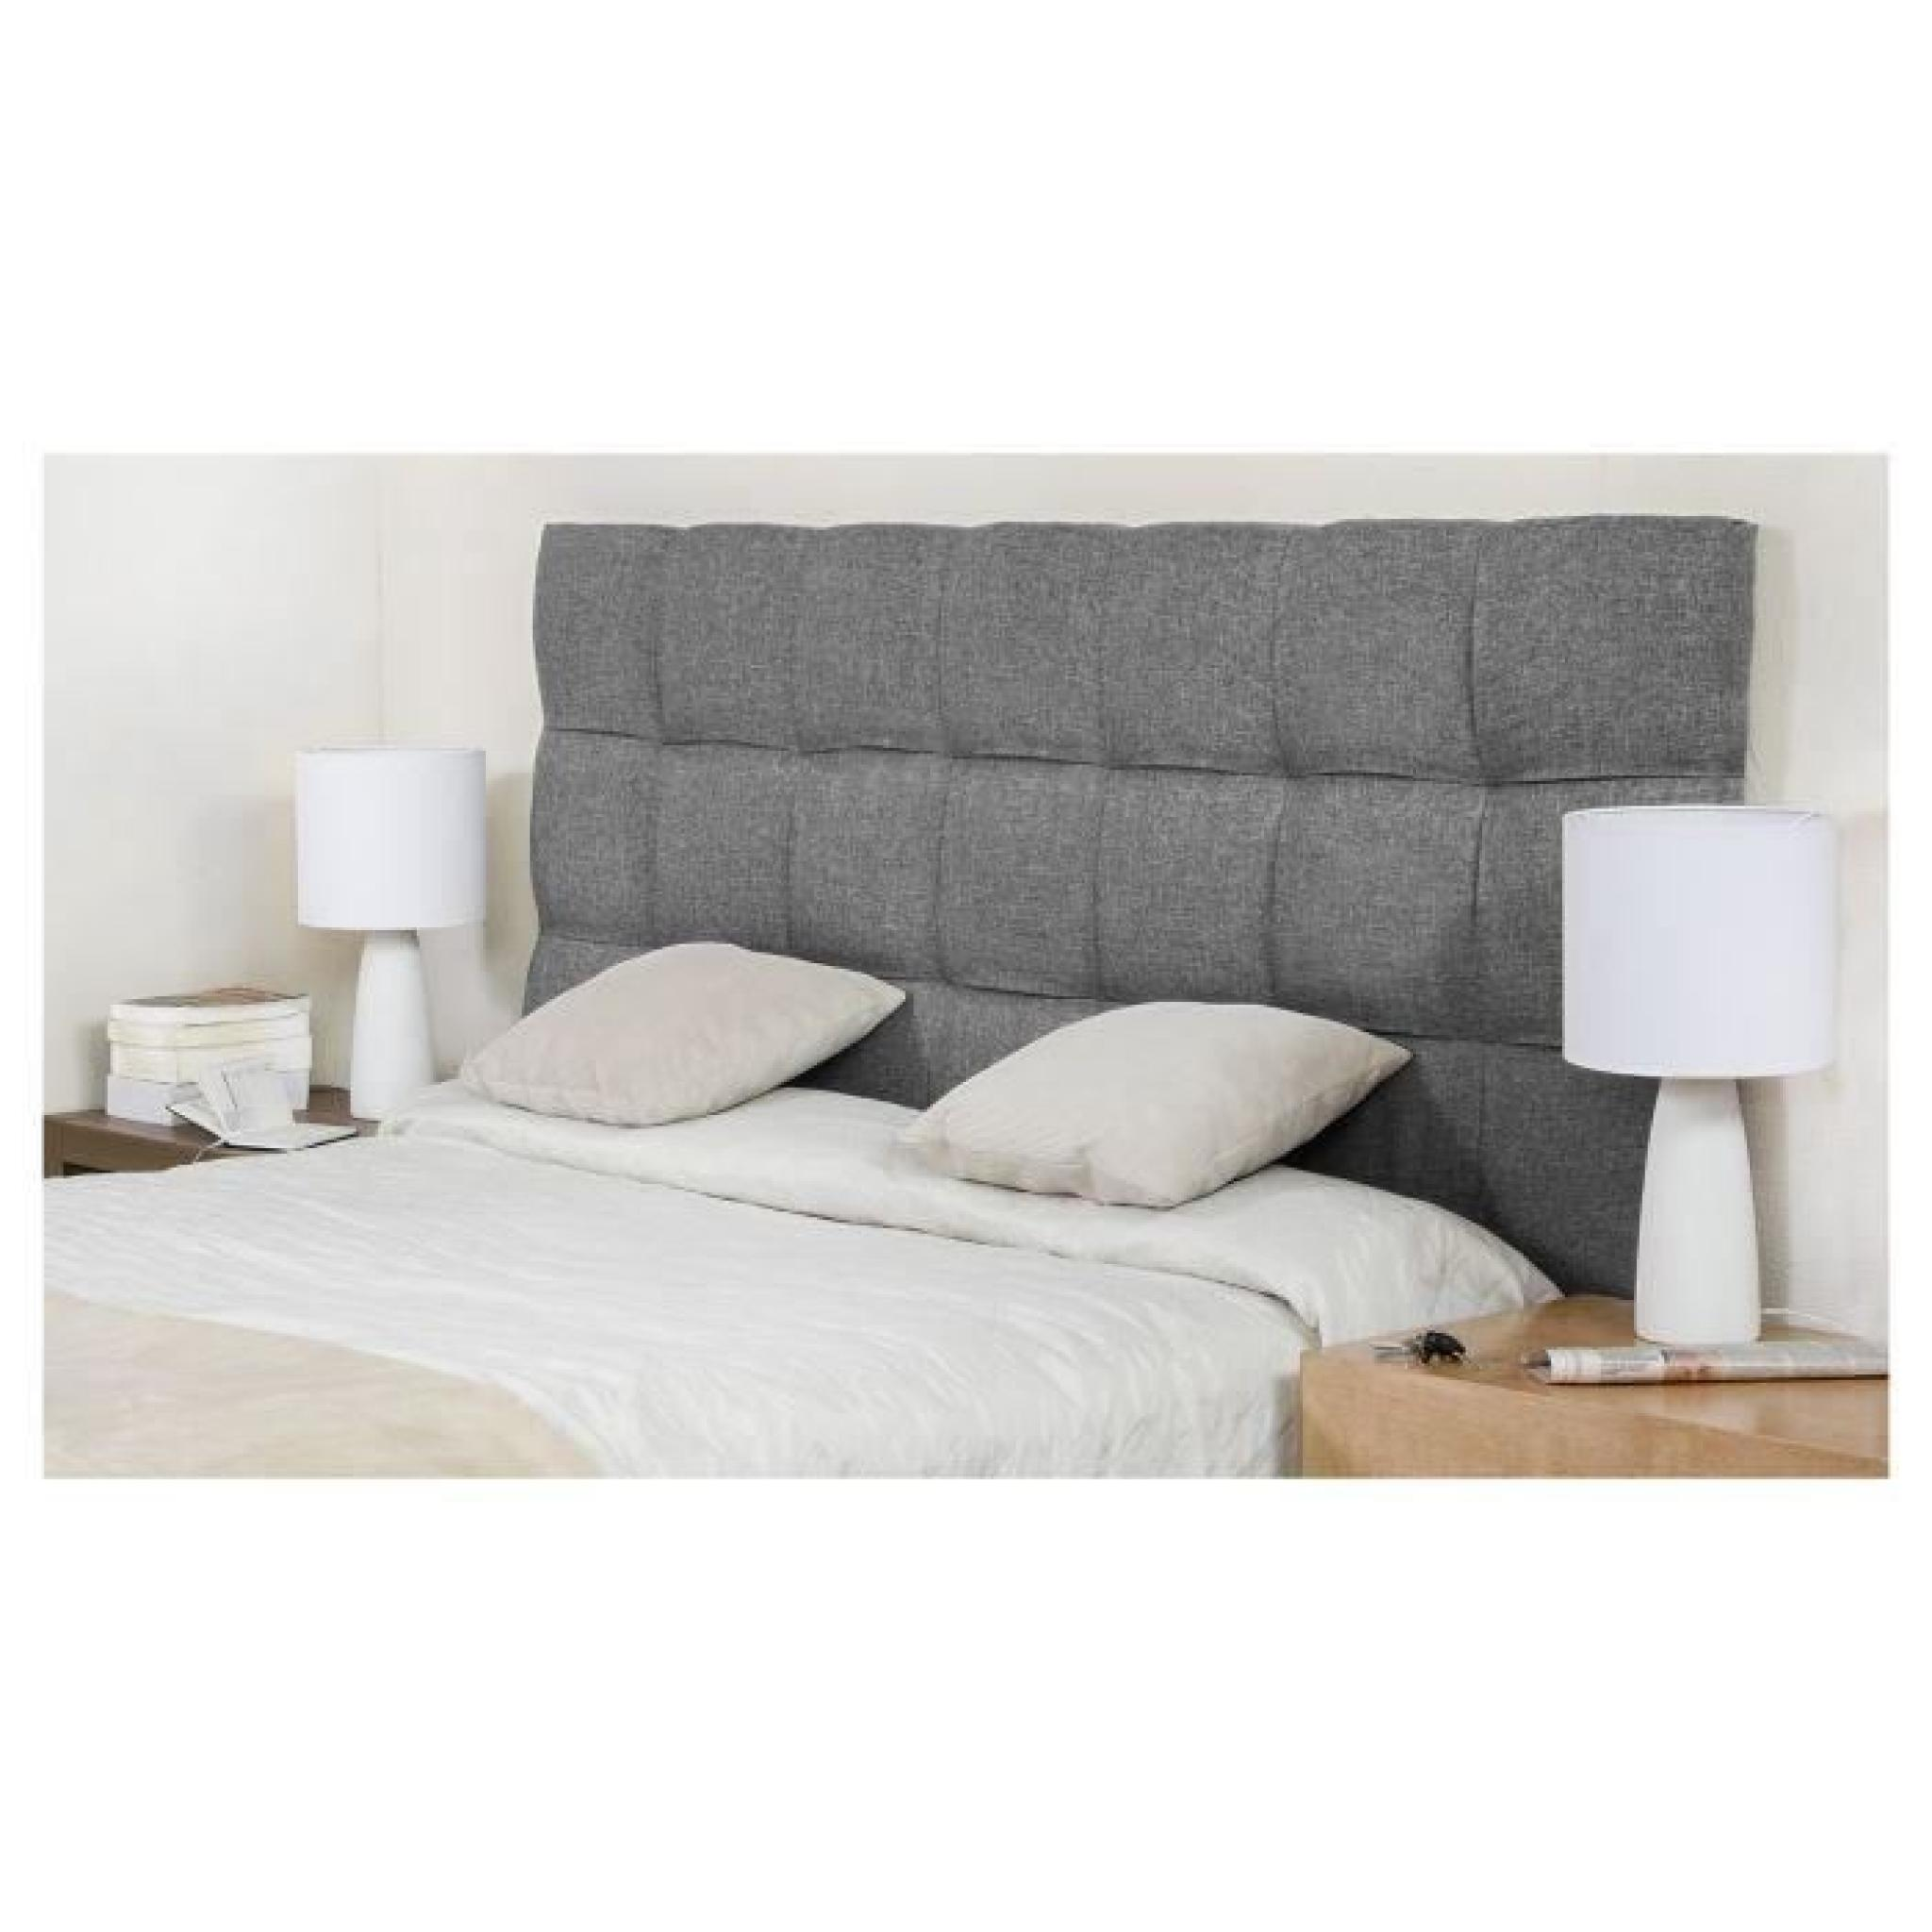 finlandek t te de lit kyn adulte 160cm gris clair achat vente tete de lit pas cher couleur. Black Bedroom Furniture Sets. Home Design Ideas